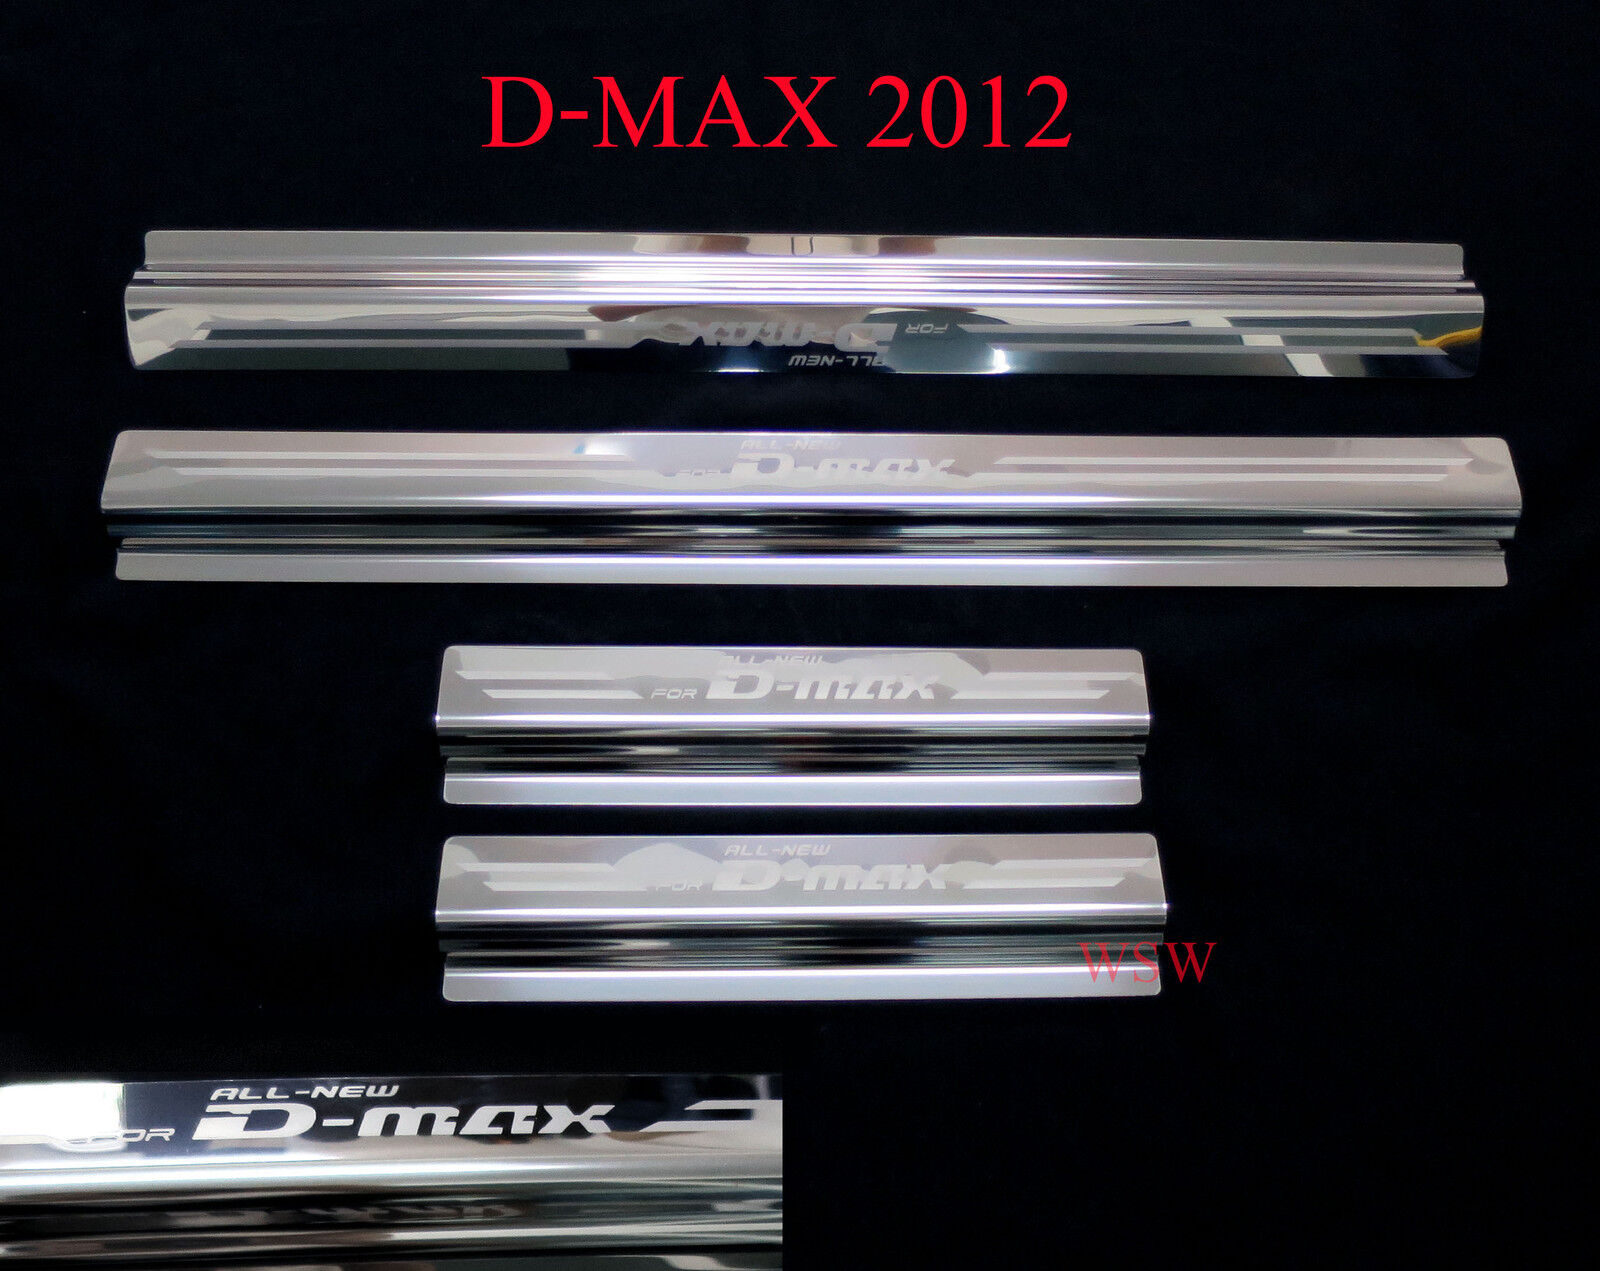 New 4 doors sill scuff plate for isuzu d max dmax year 2012 holden rodeo